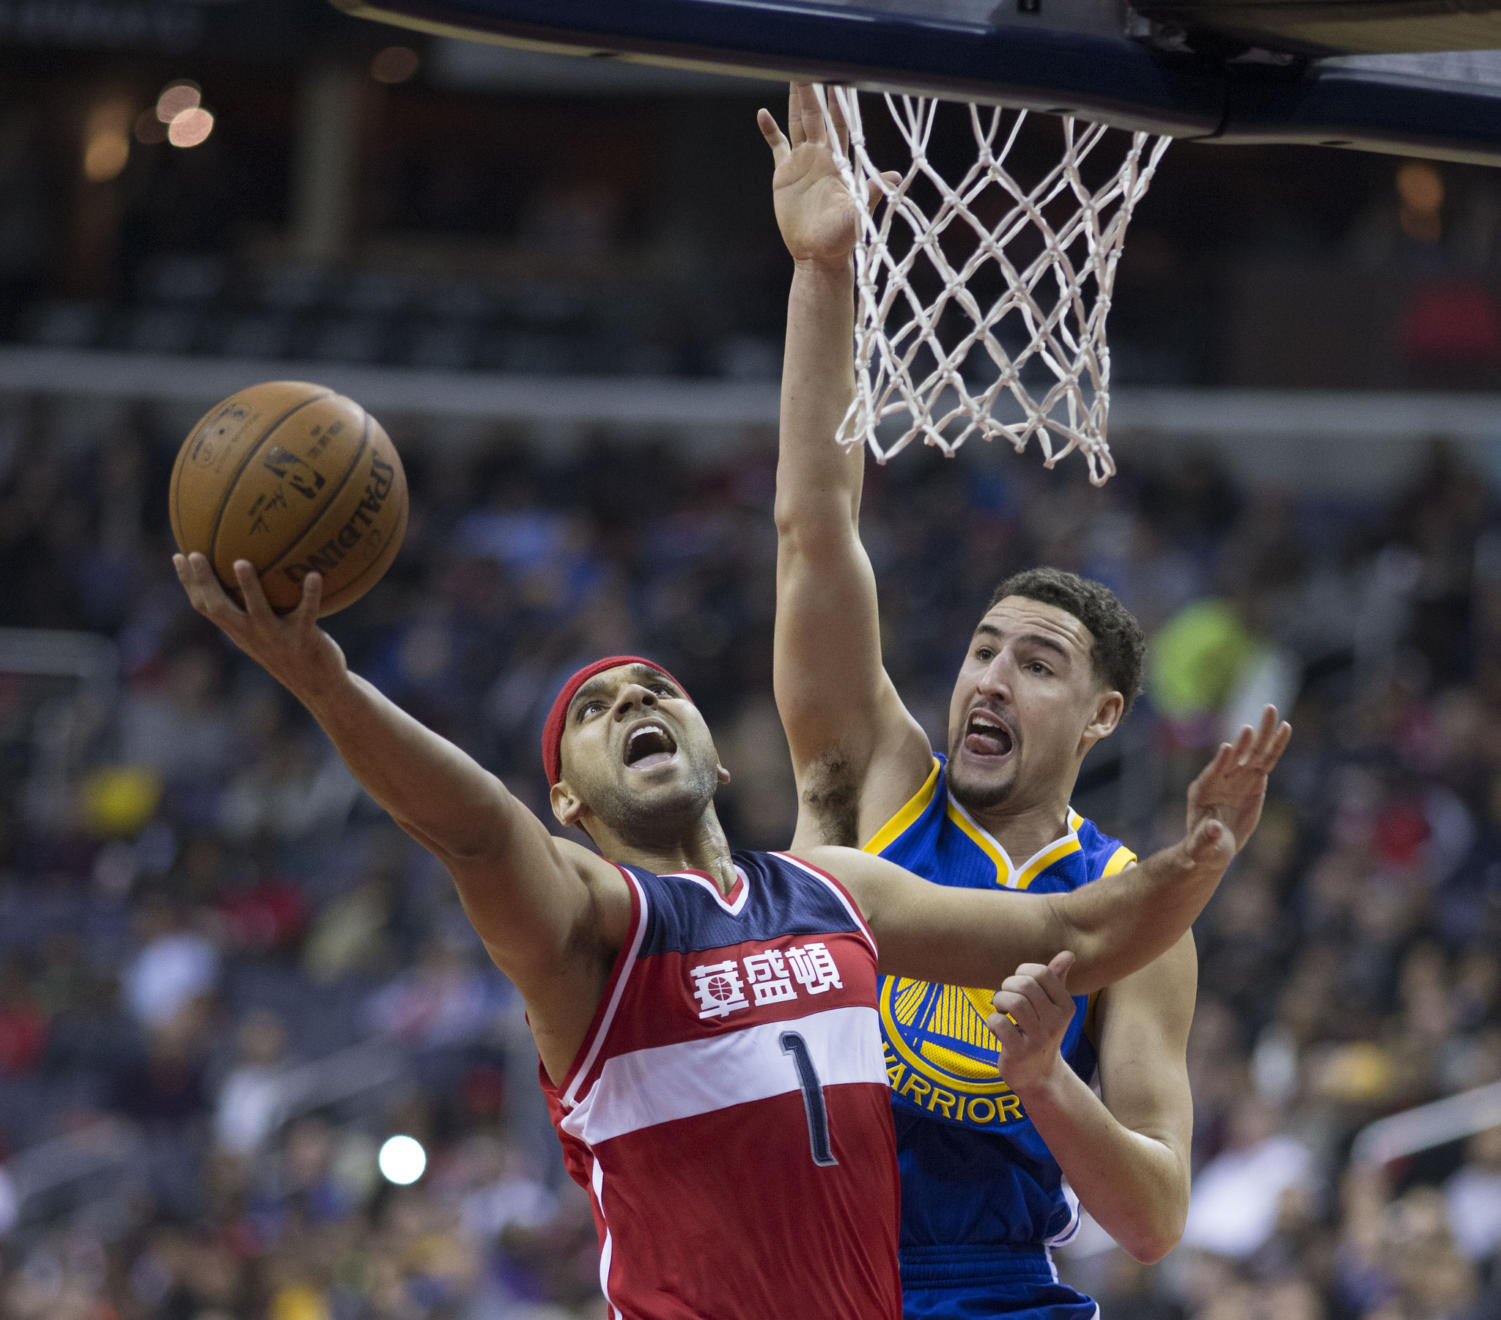 Warriors shooting guard Klay Thompson contests Jared Dudley's layup at a game on 2/3/2016 Photo obtained via KeithAllisonPhoto.com on Flickr under a Creative Commons license